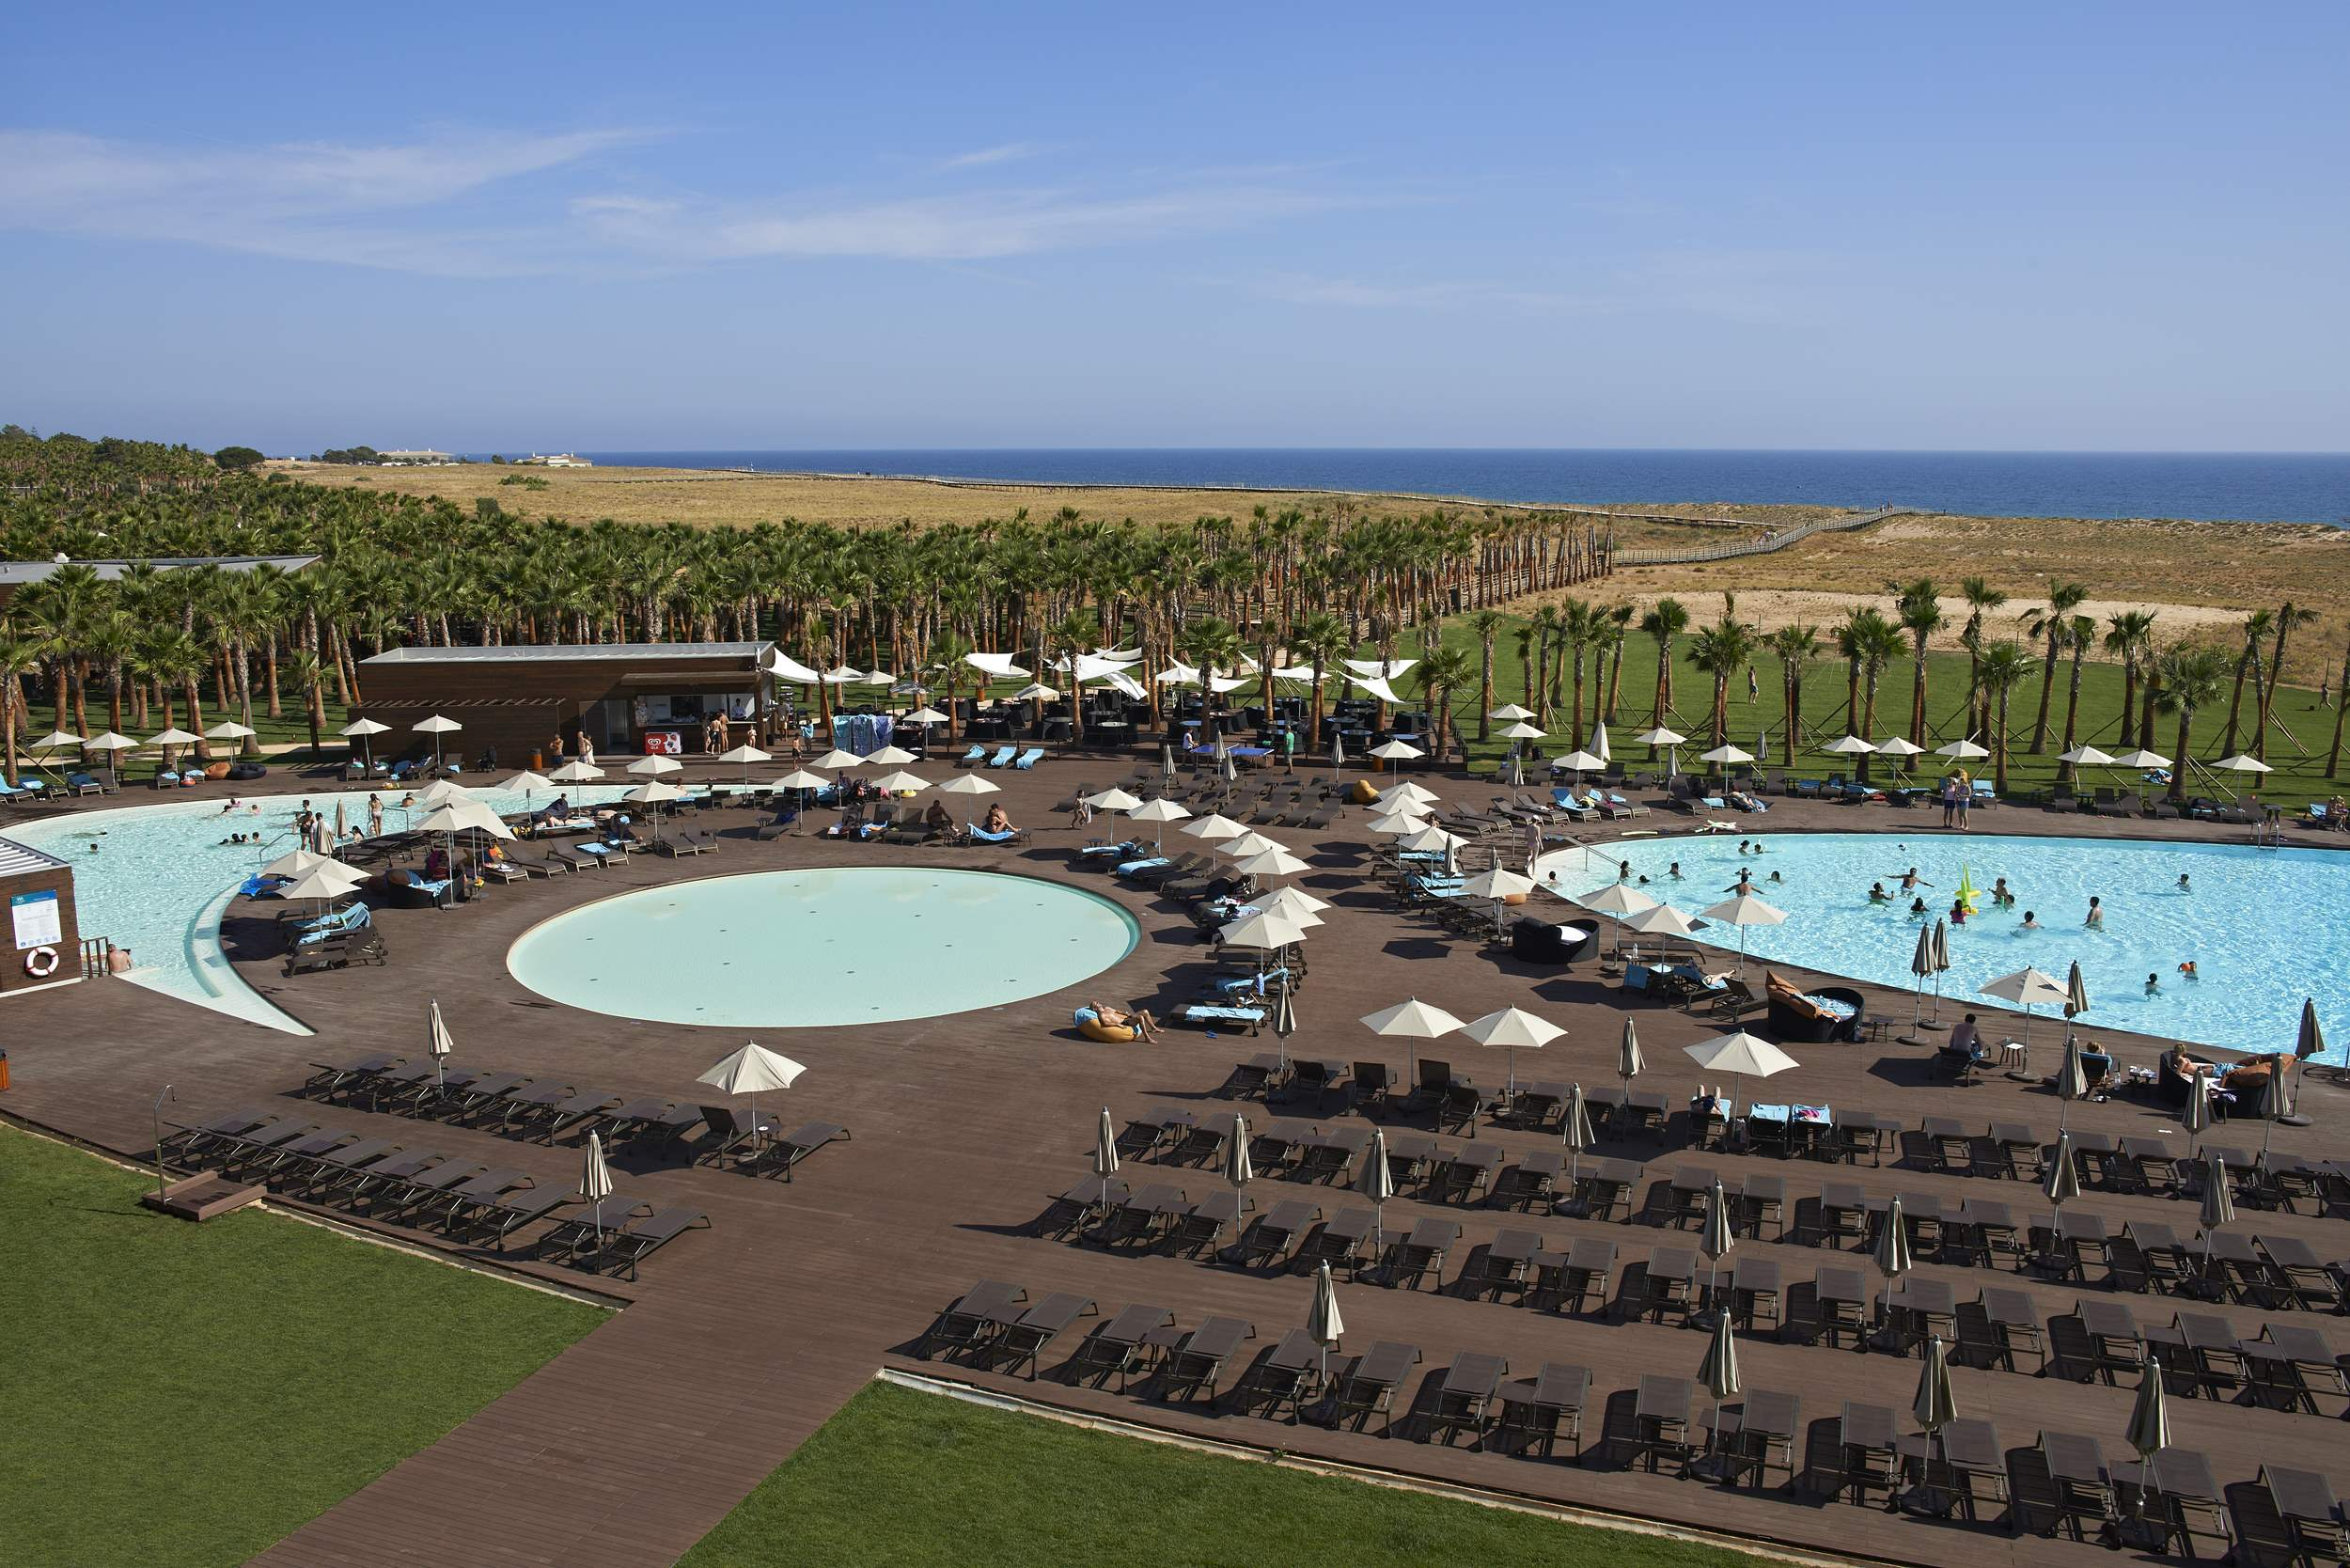 Vidamar Hotel Ocean View Room, HB, Double Room, 1 bedroom hotel in Vidamar Resort, Algarve Photo #2